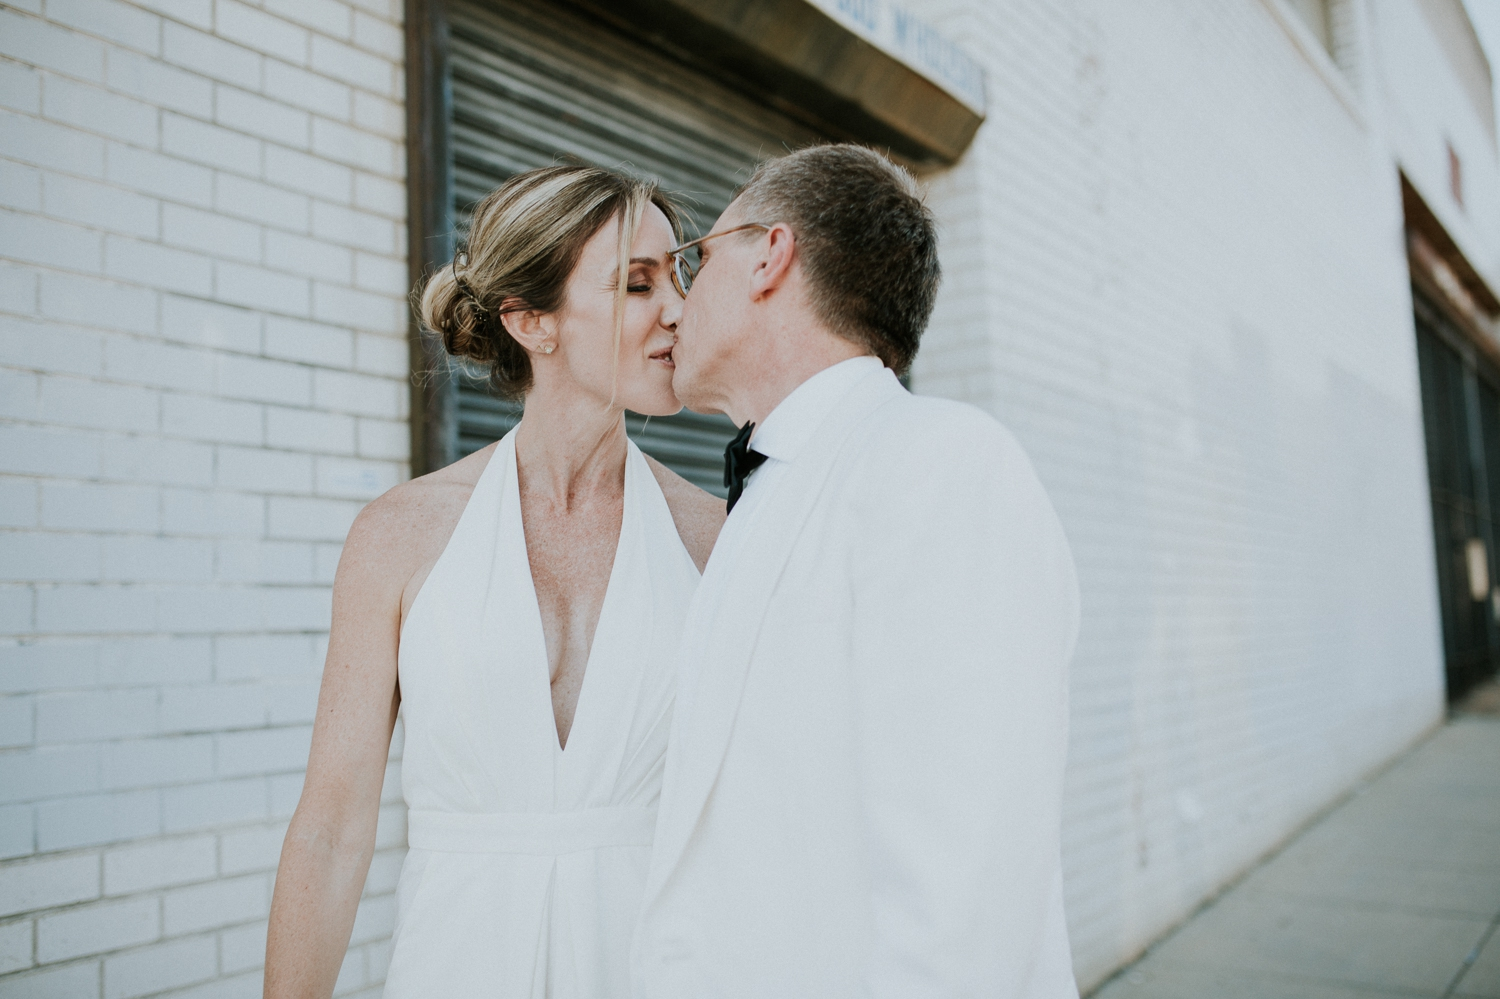 washington-dc-union-market-wedding-elopement-photography 32.jpg